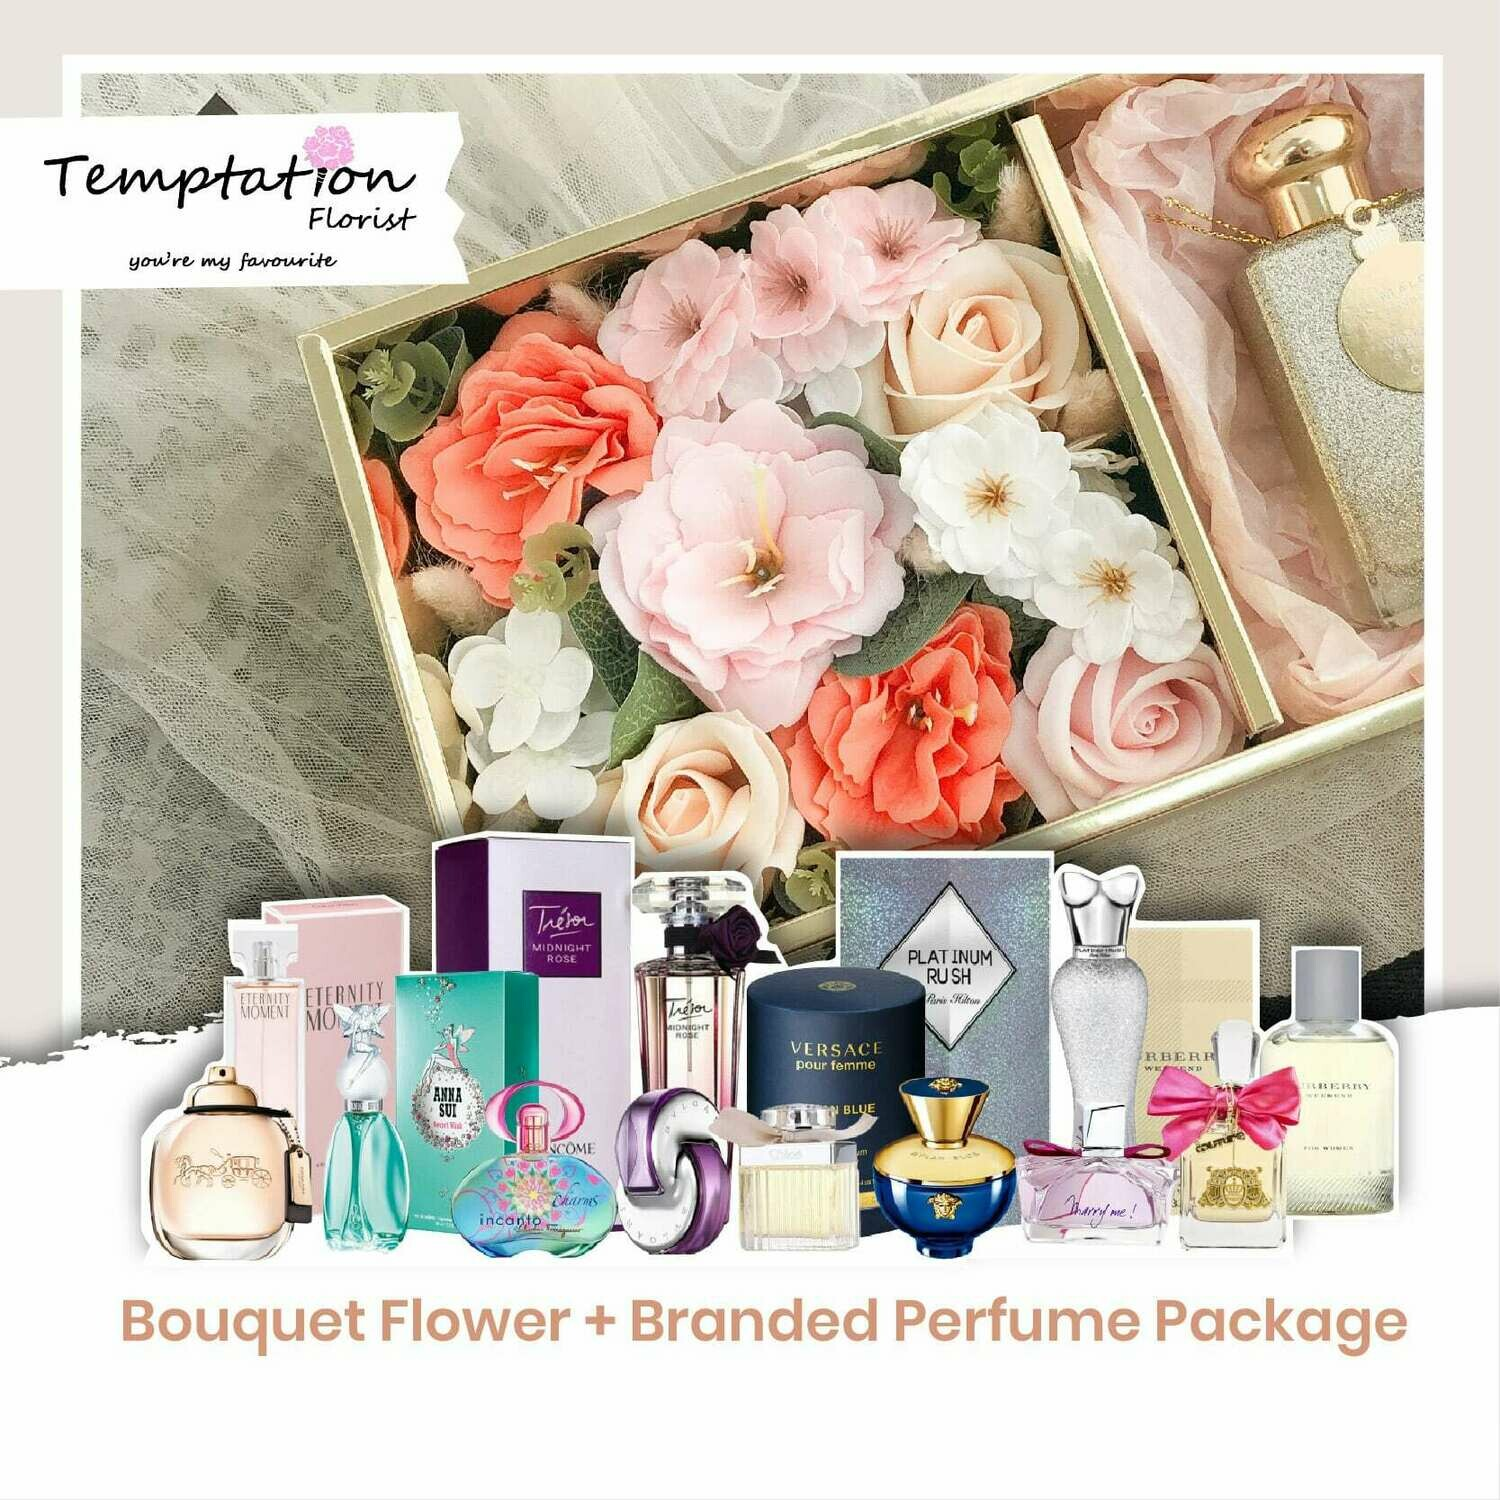 Temptation Florist Catre Flower Box + Branded Perfume Package (Free Shipping! Only Deliver in Seremban)